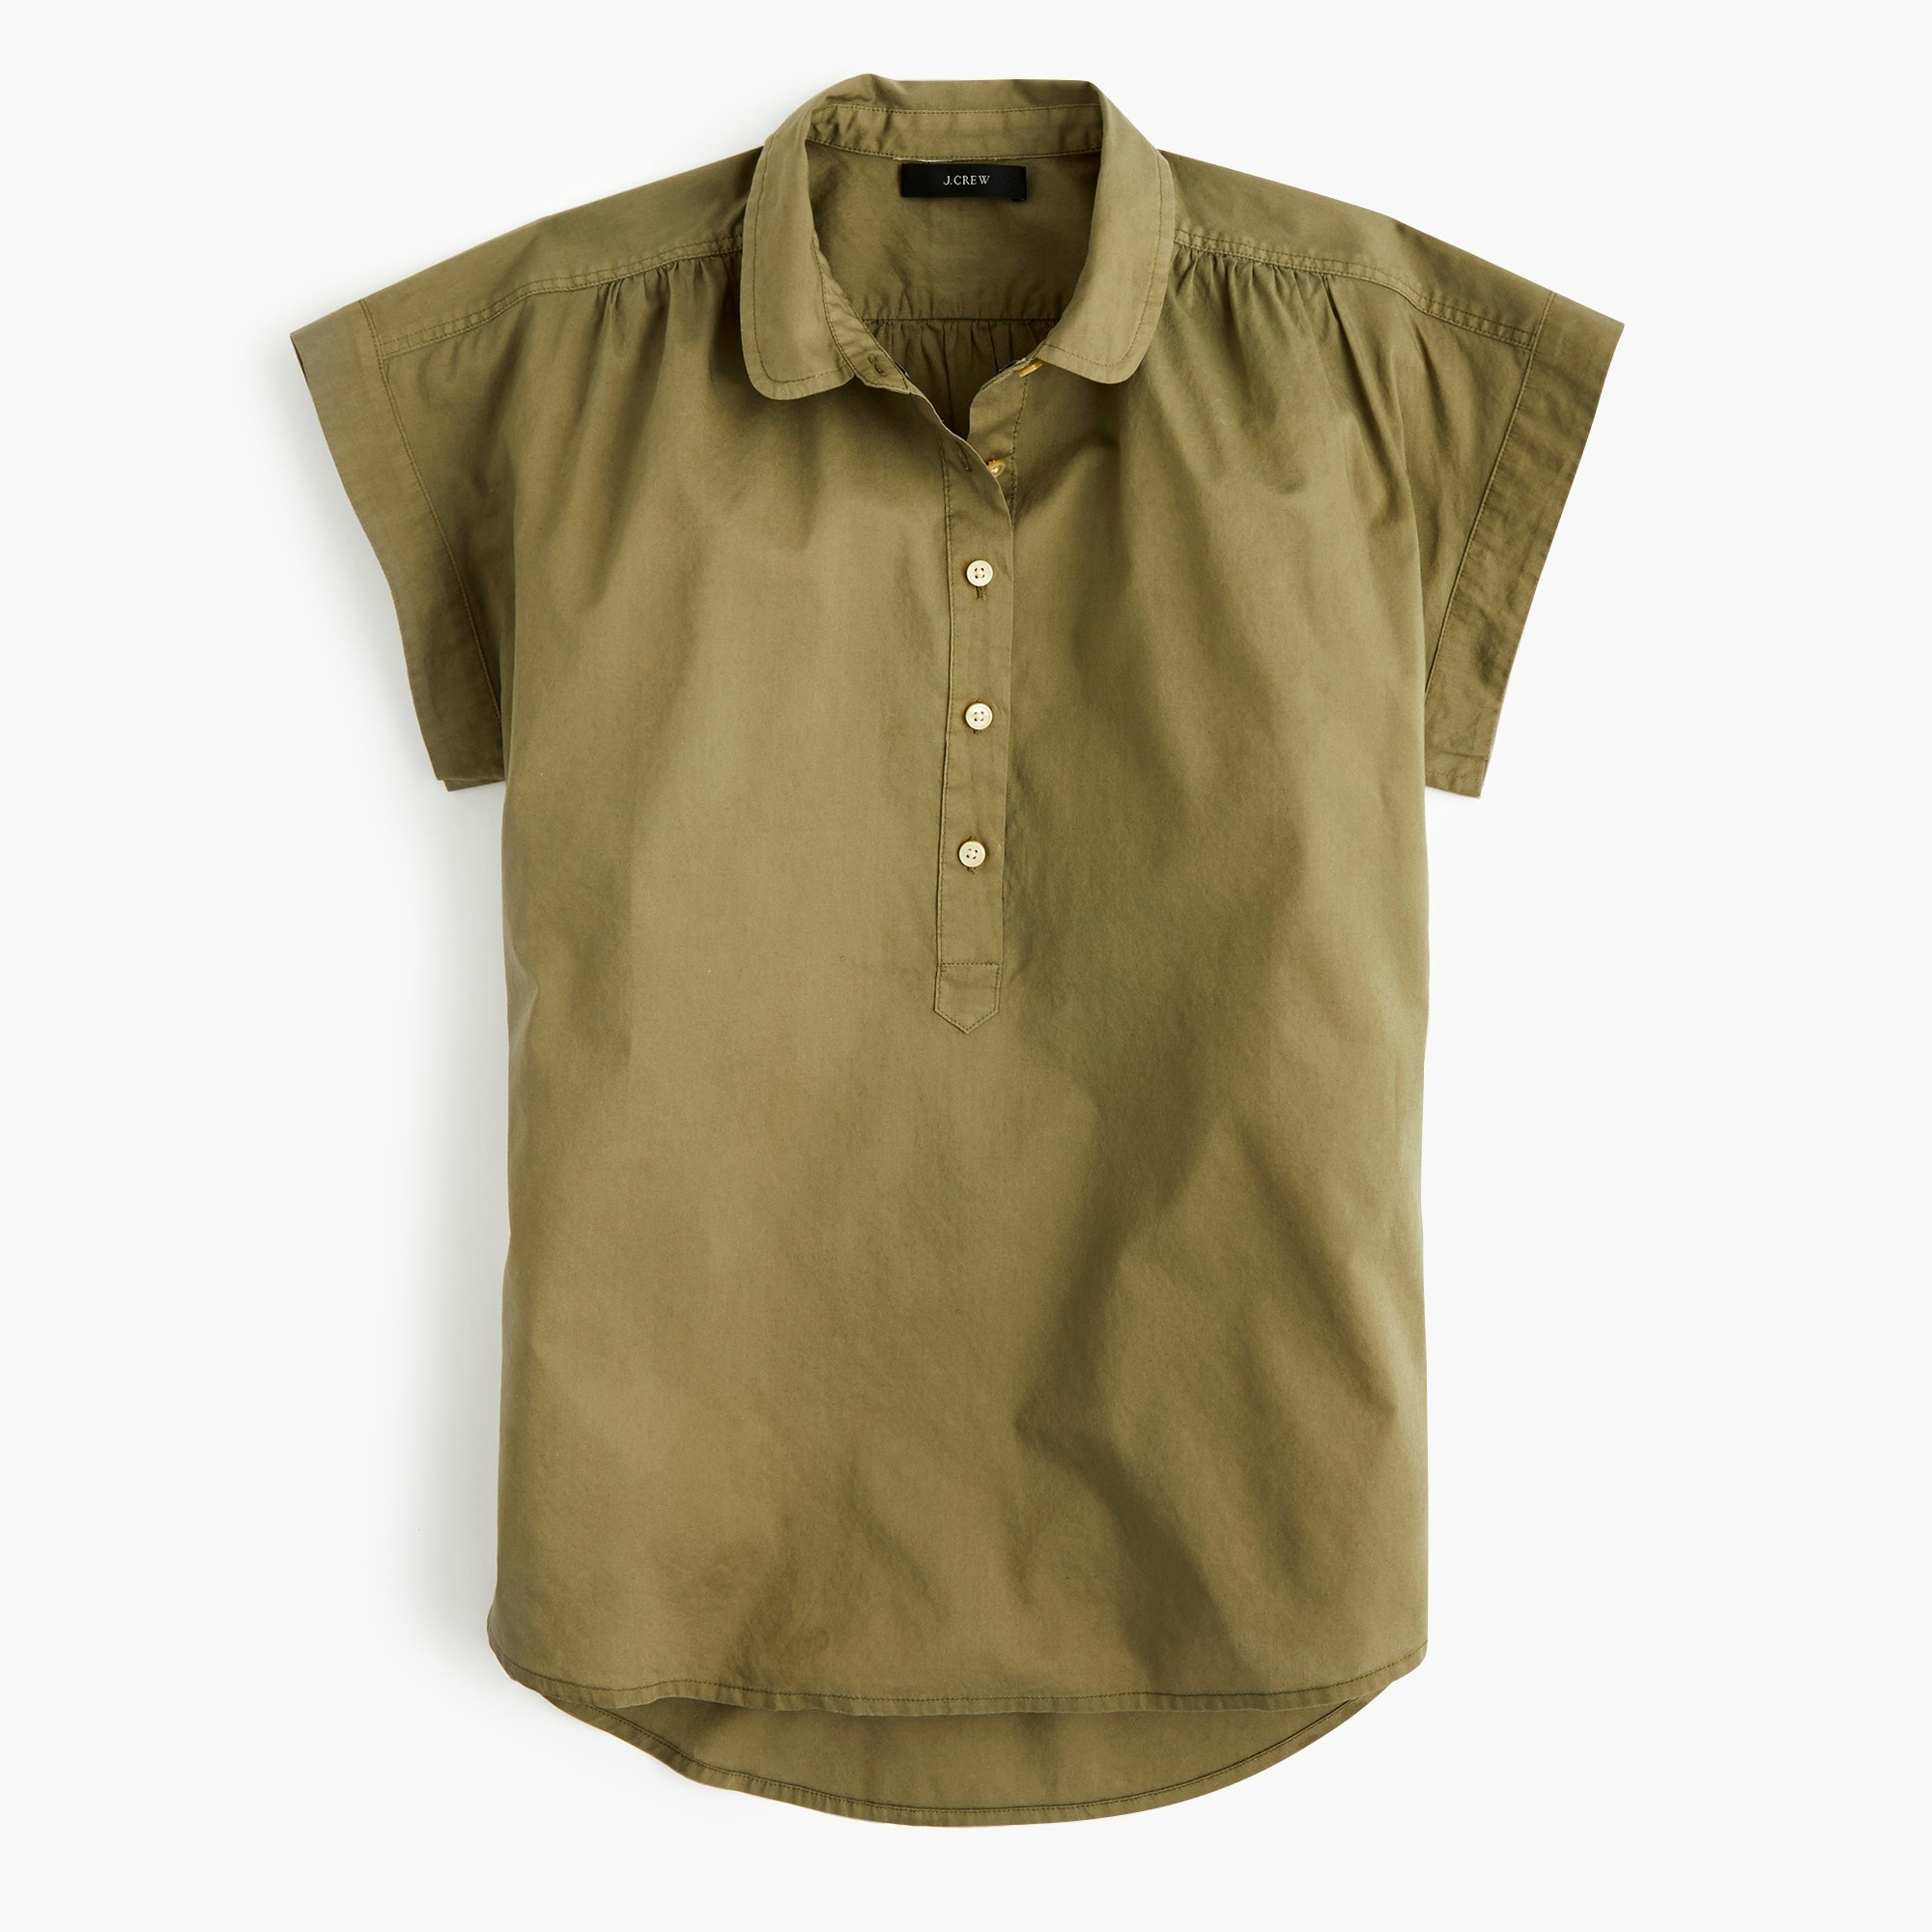 Image 1 for Tall collared popover shirt in garment-dyed cotton poplin